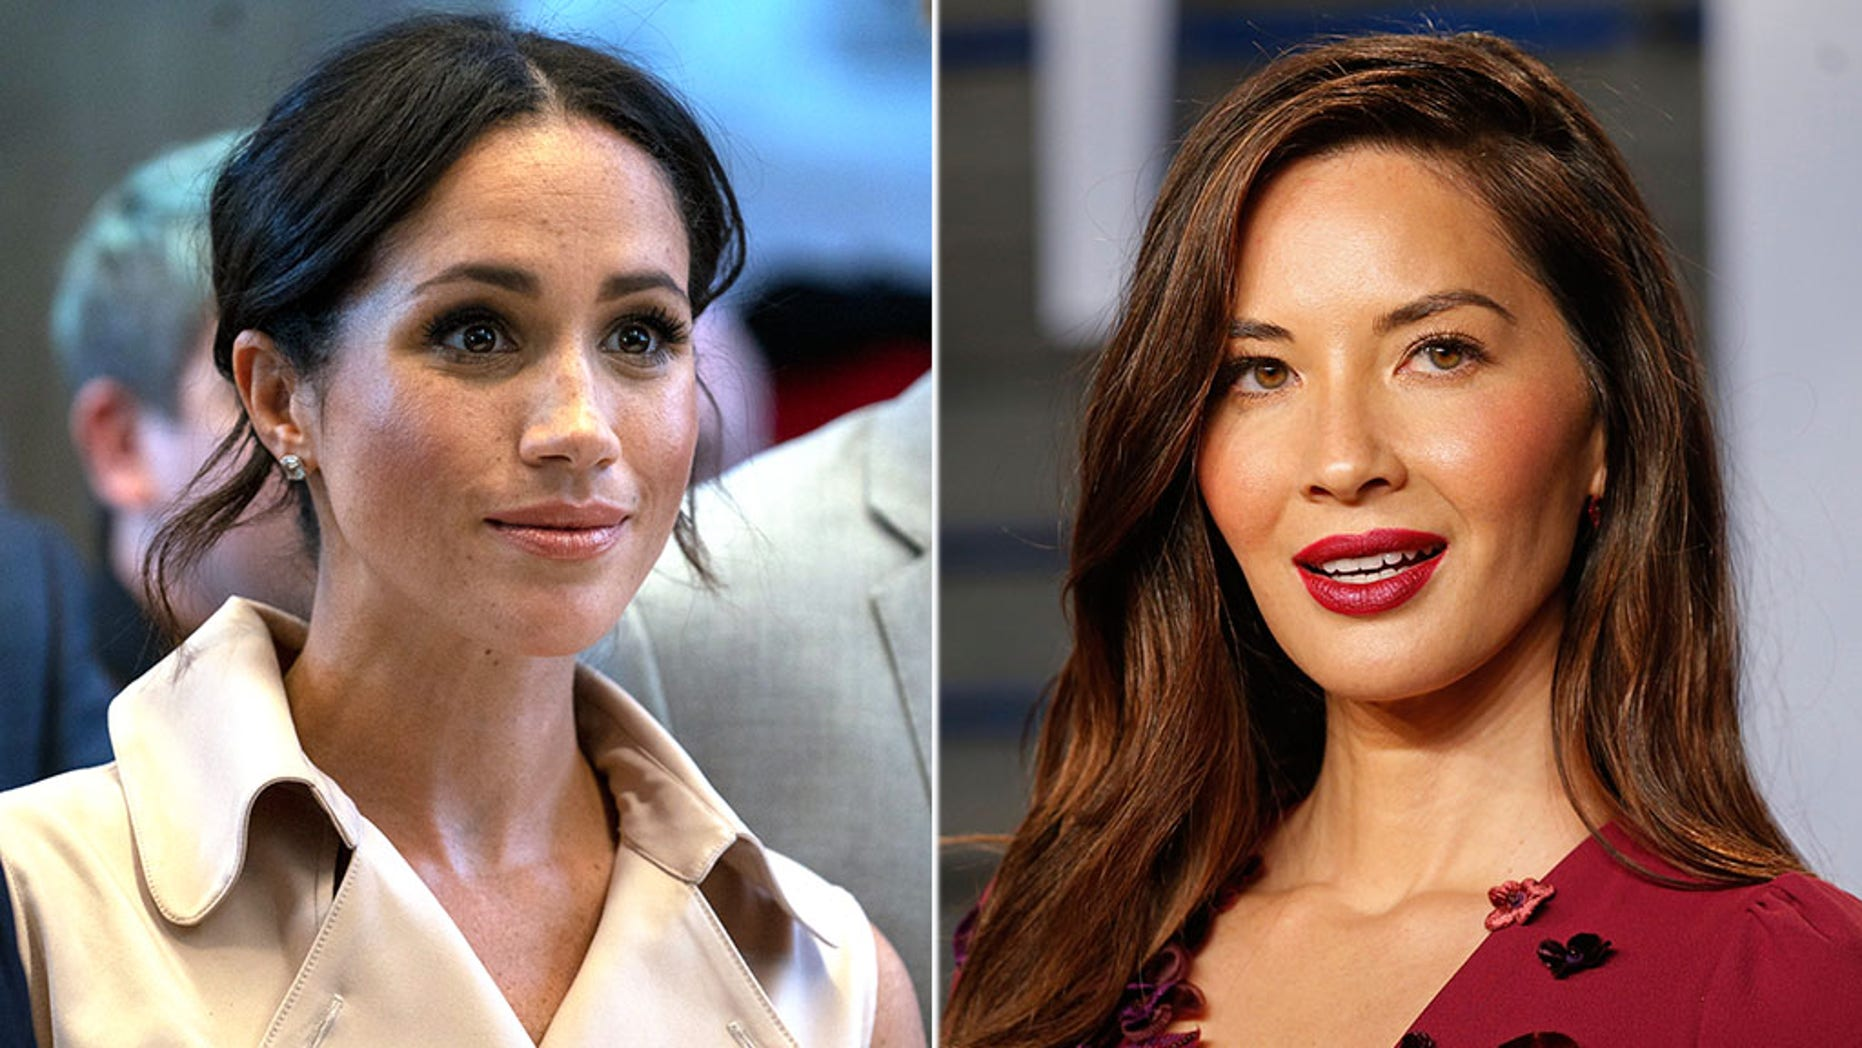 Meghan Markle (left) and Olivia Munn (right).